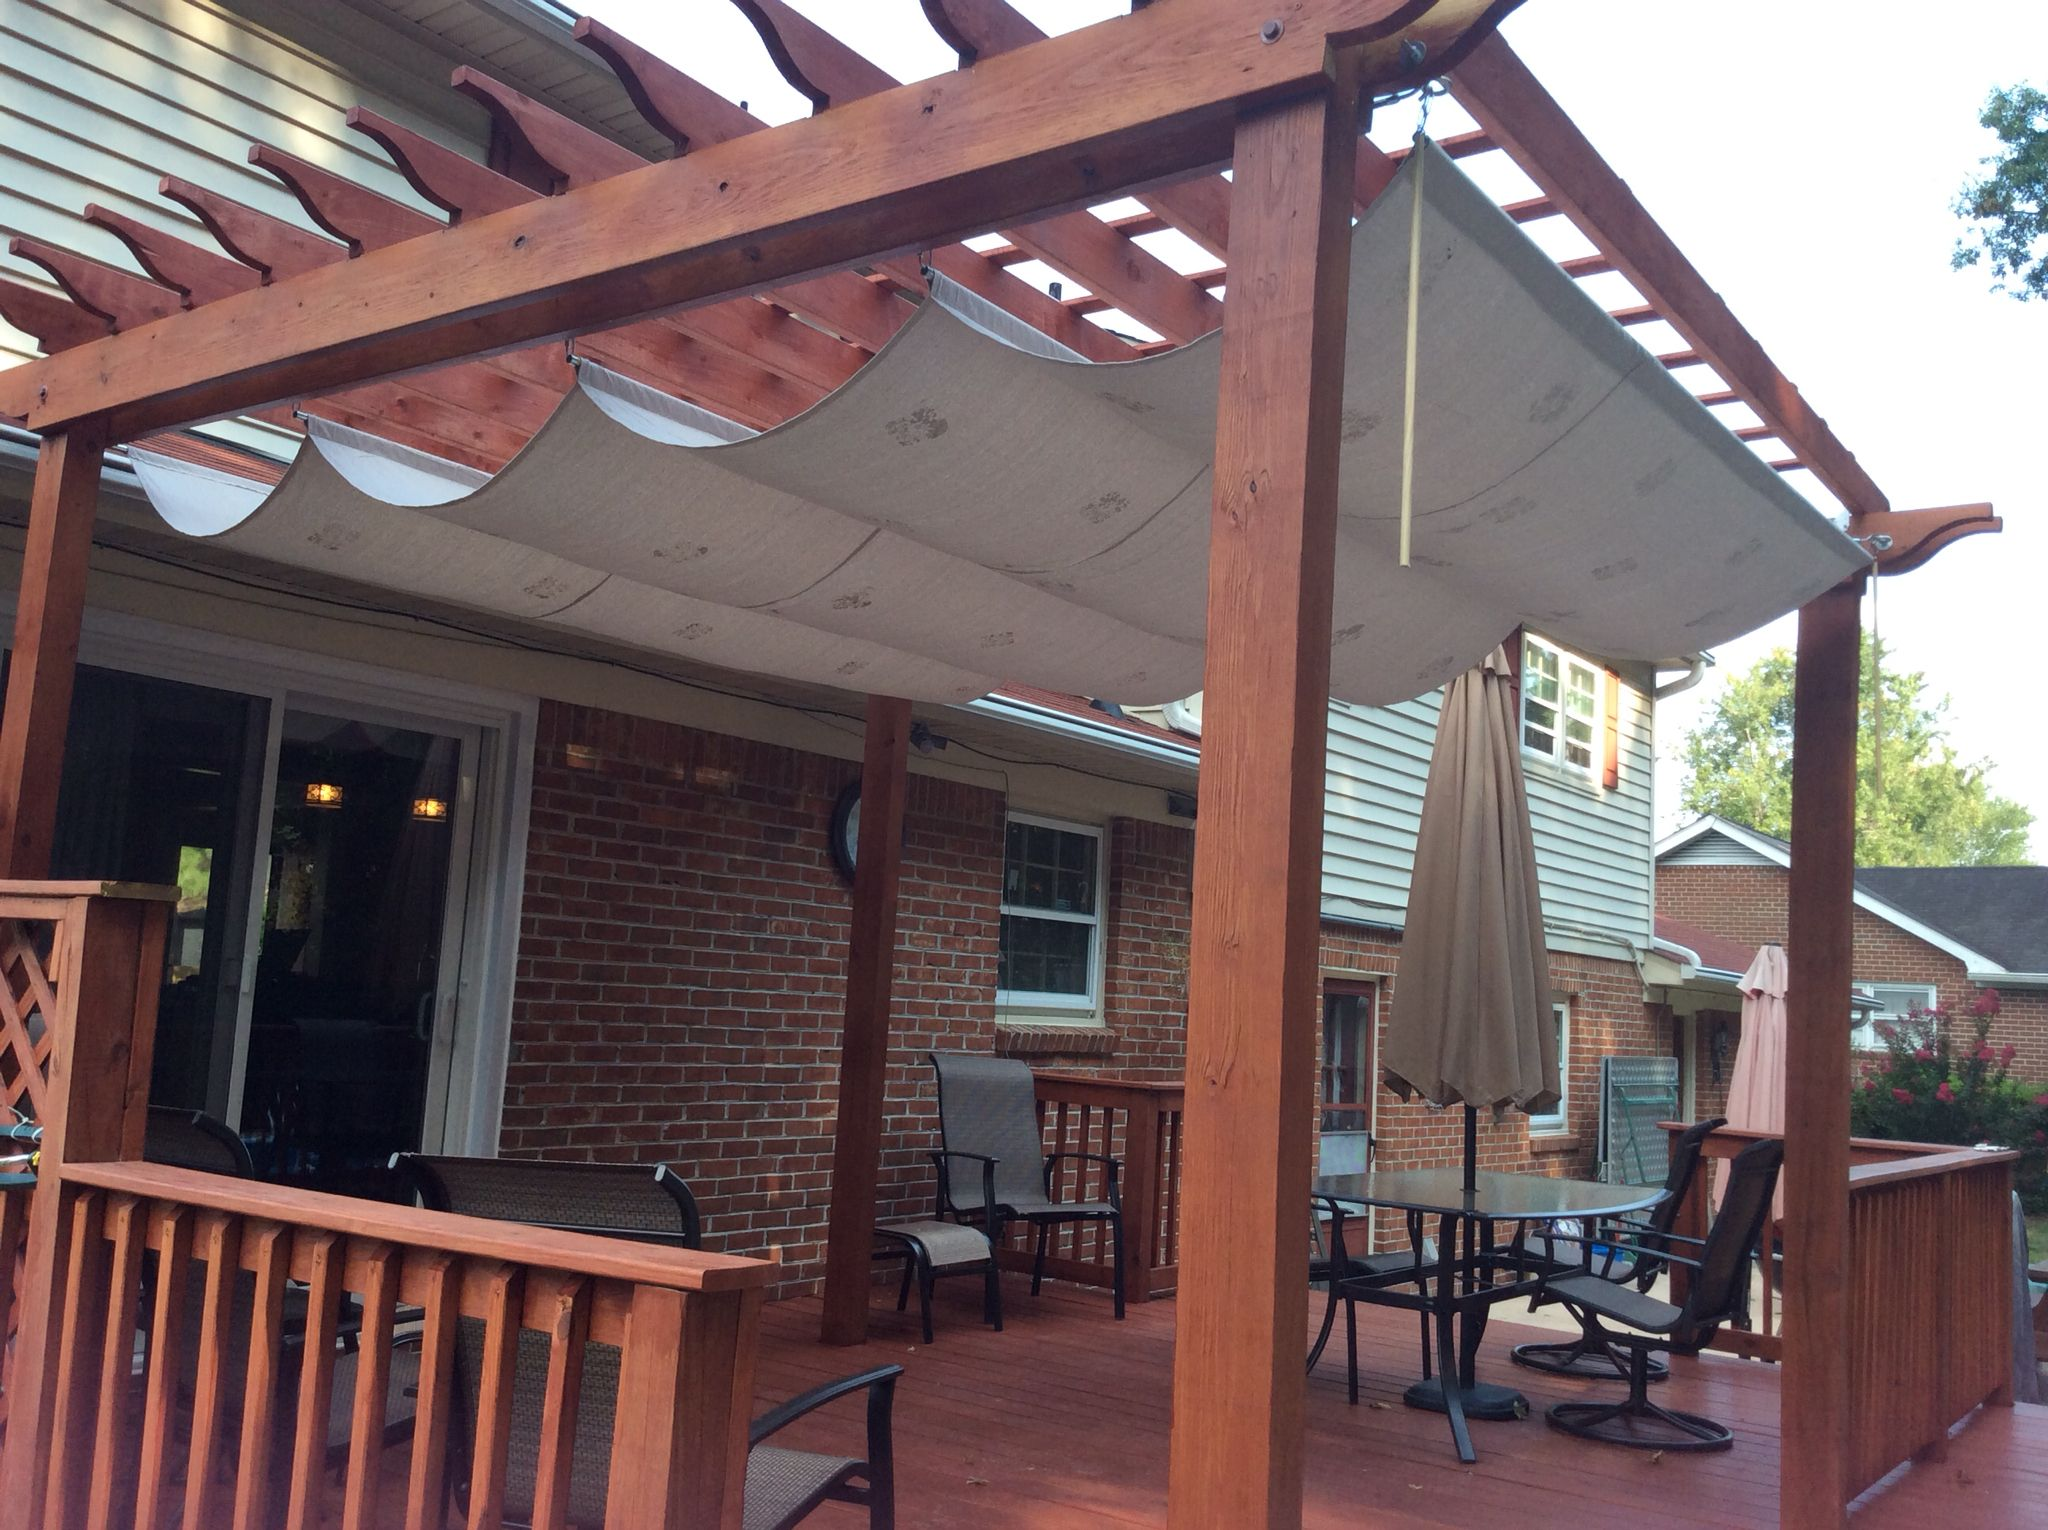 Marvelous Pergola Shade. Made With A Painters Tarp From Home Depot, A Rubber Stamp And